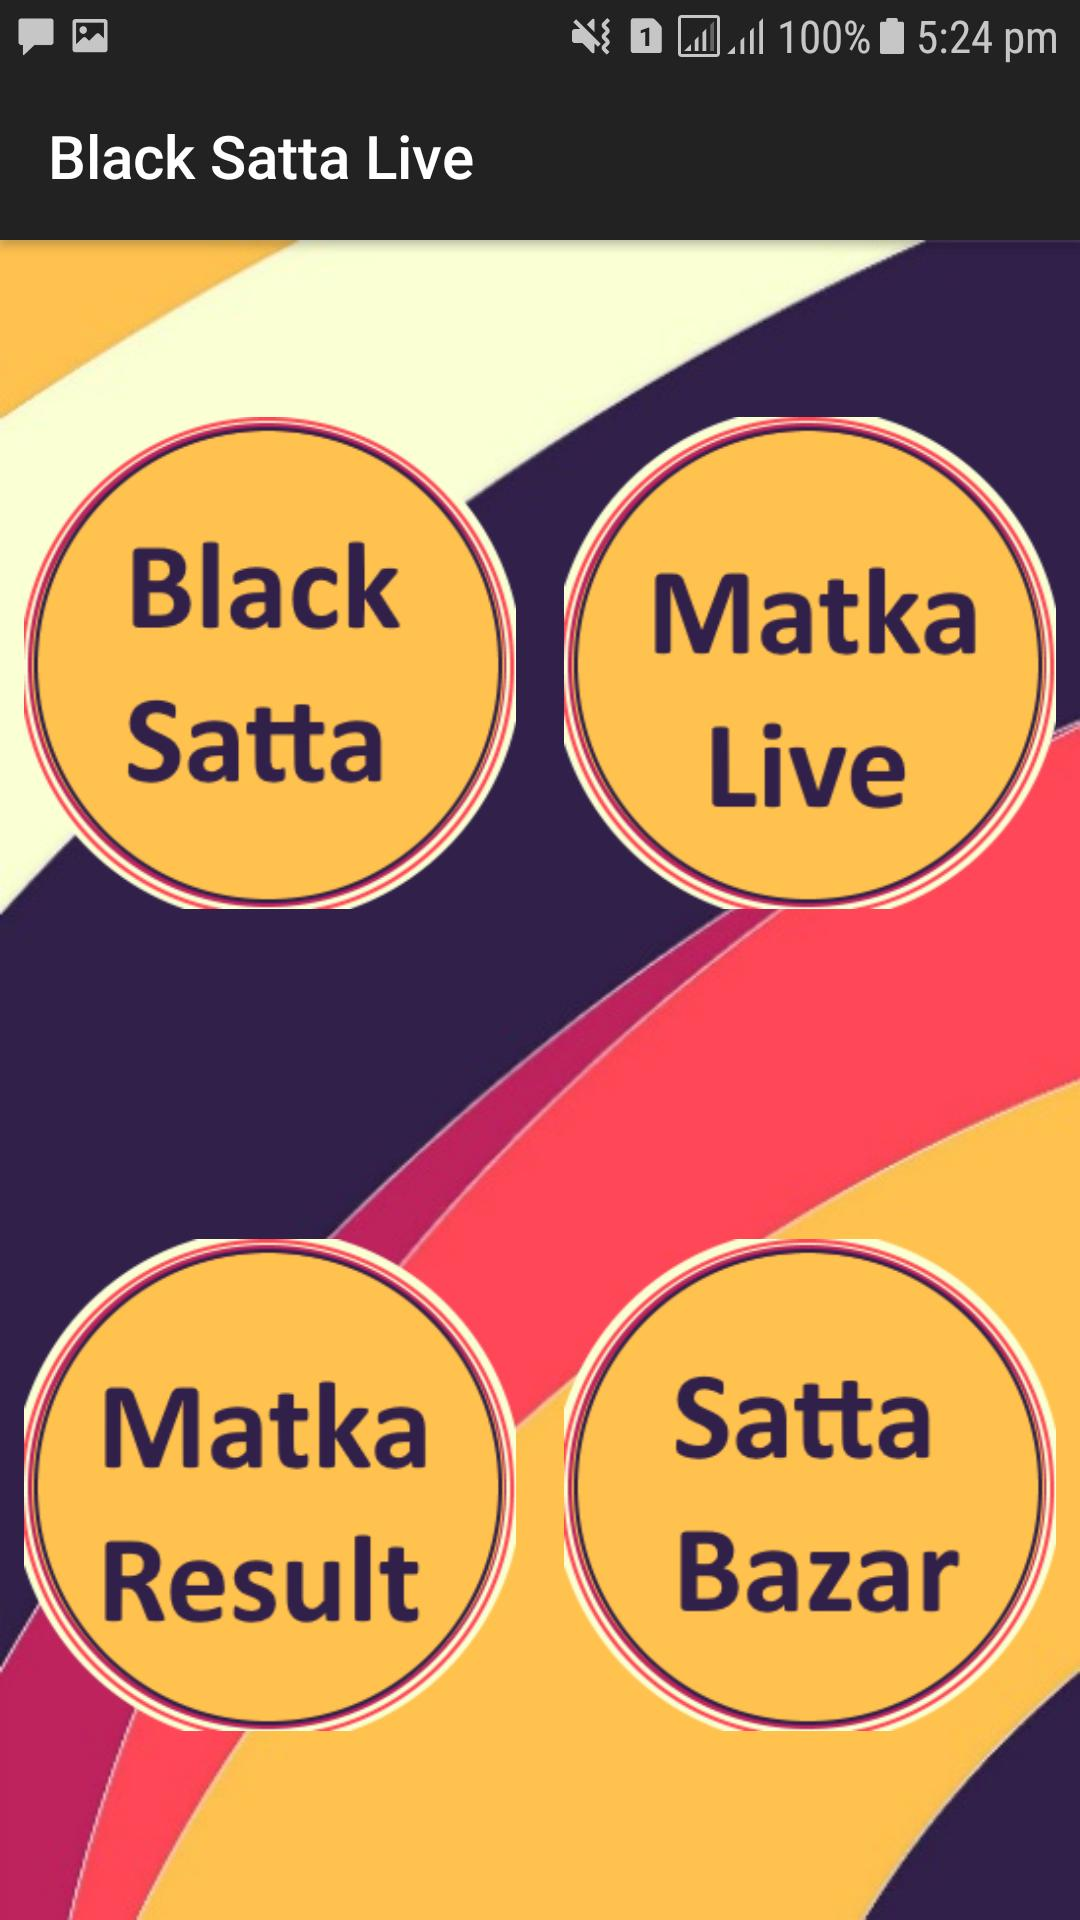 Black Satta Results (Satta Matka) Live for Android - APK Download